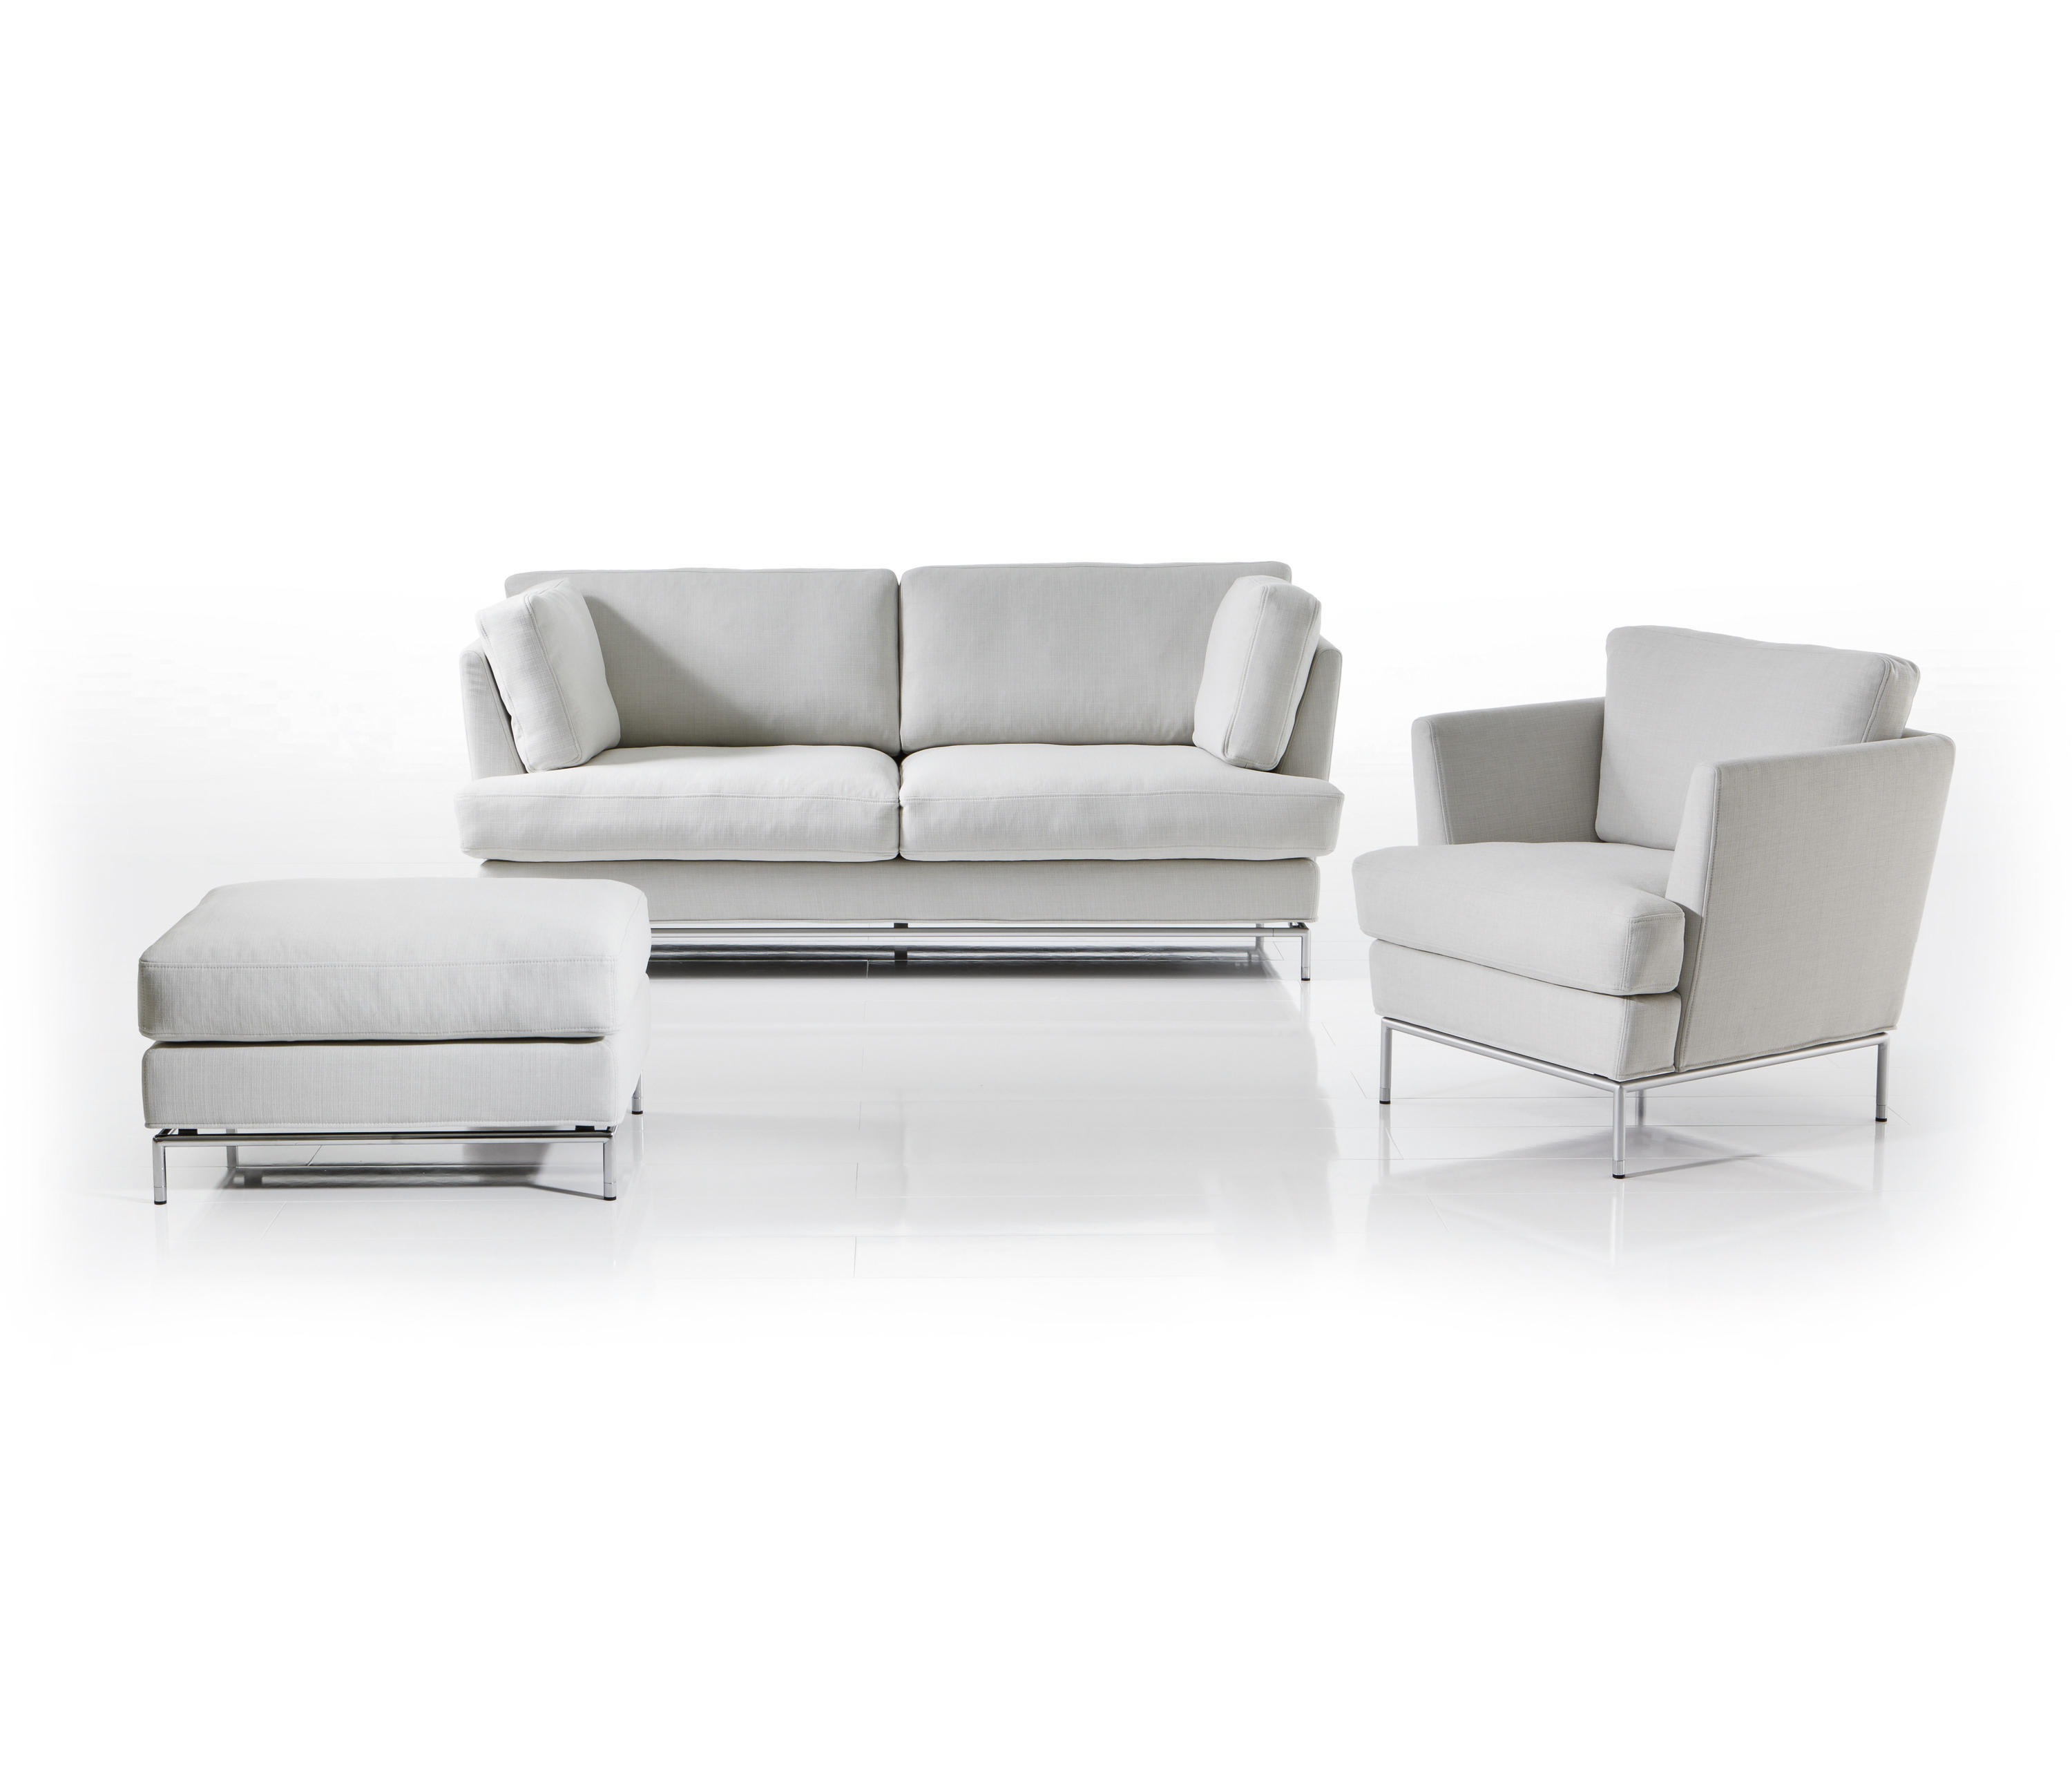 CAROUSEL - Sofas from Brühl | Architonic